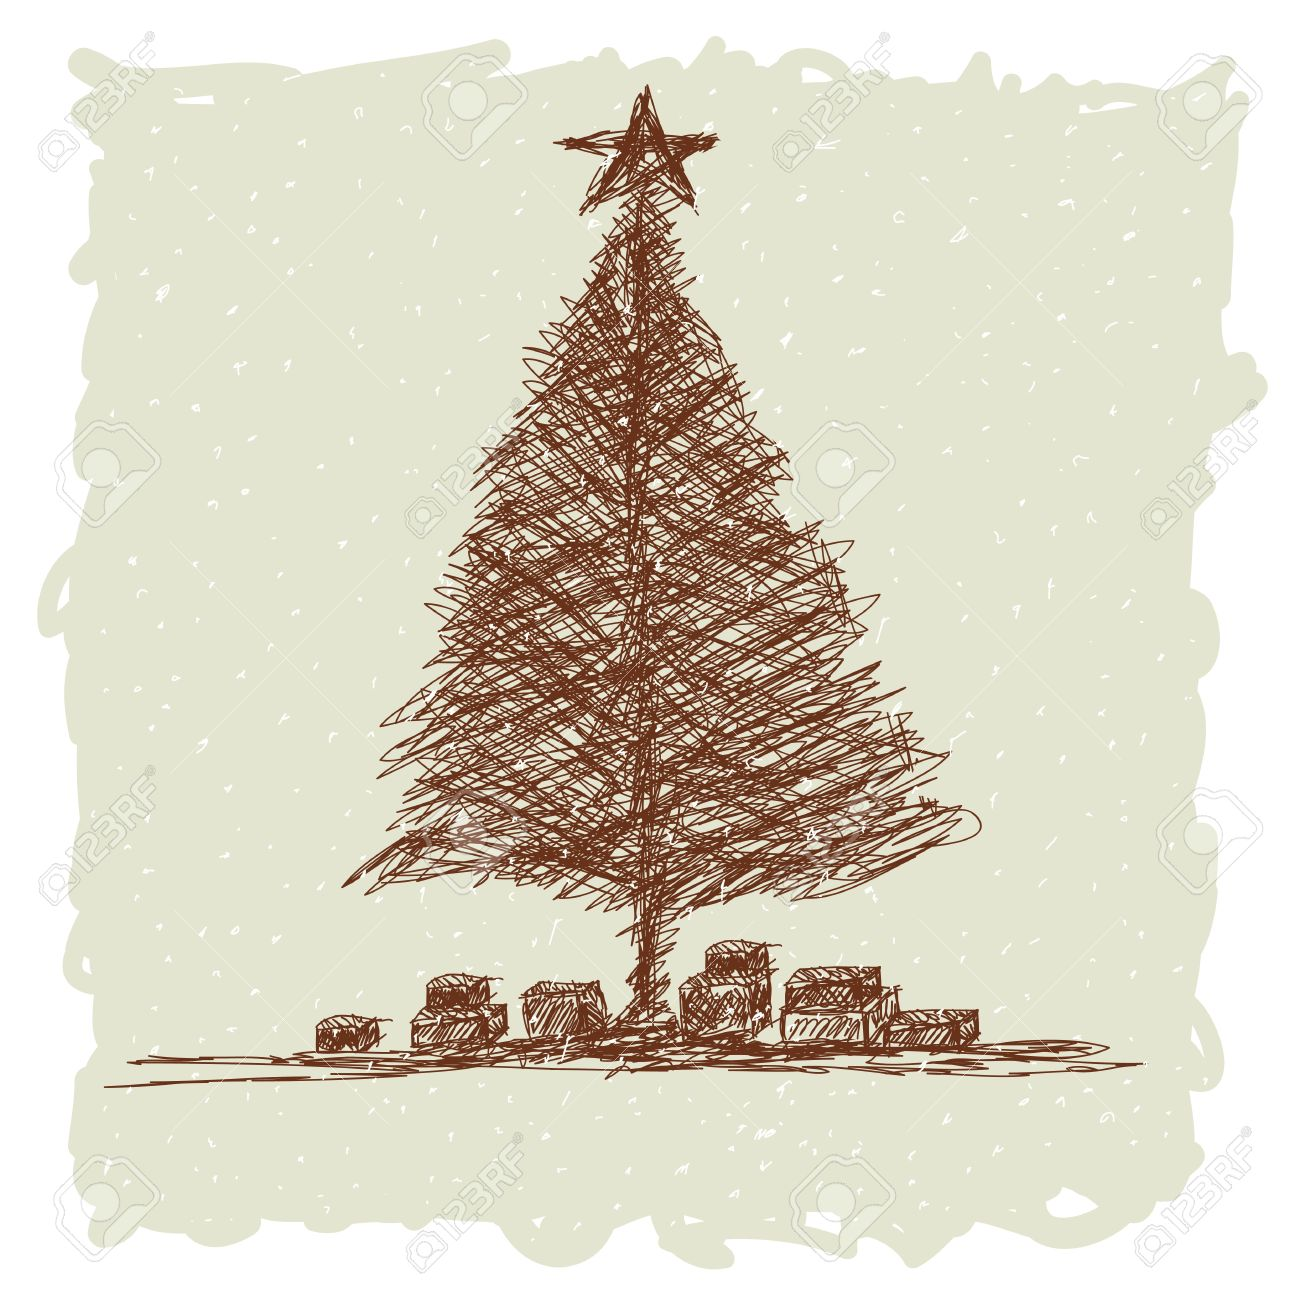 Hand Drawn Illustration Of Vintage Christmas Tree Stock Vector